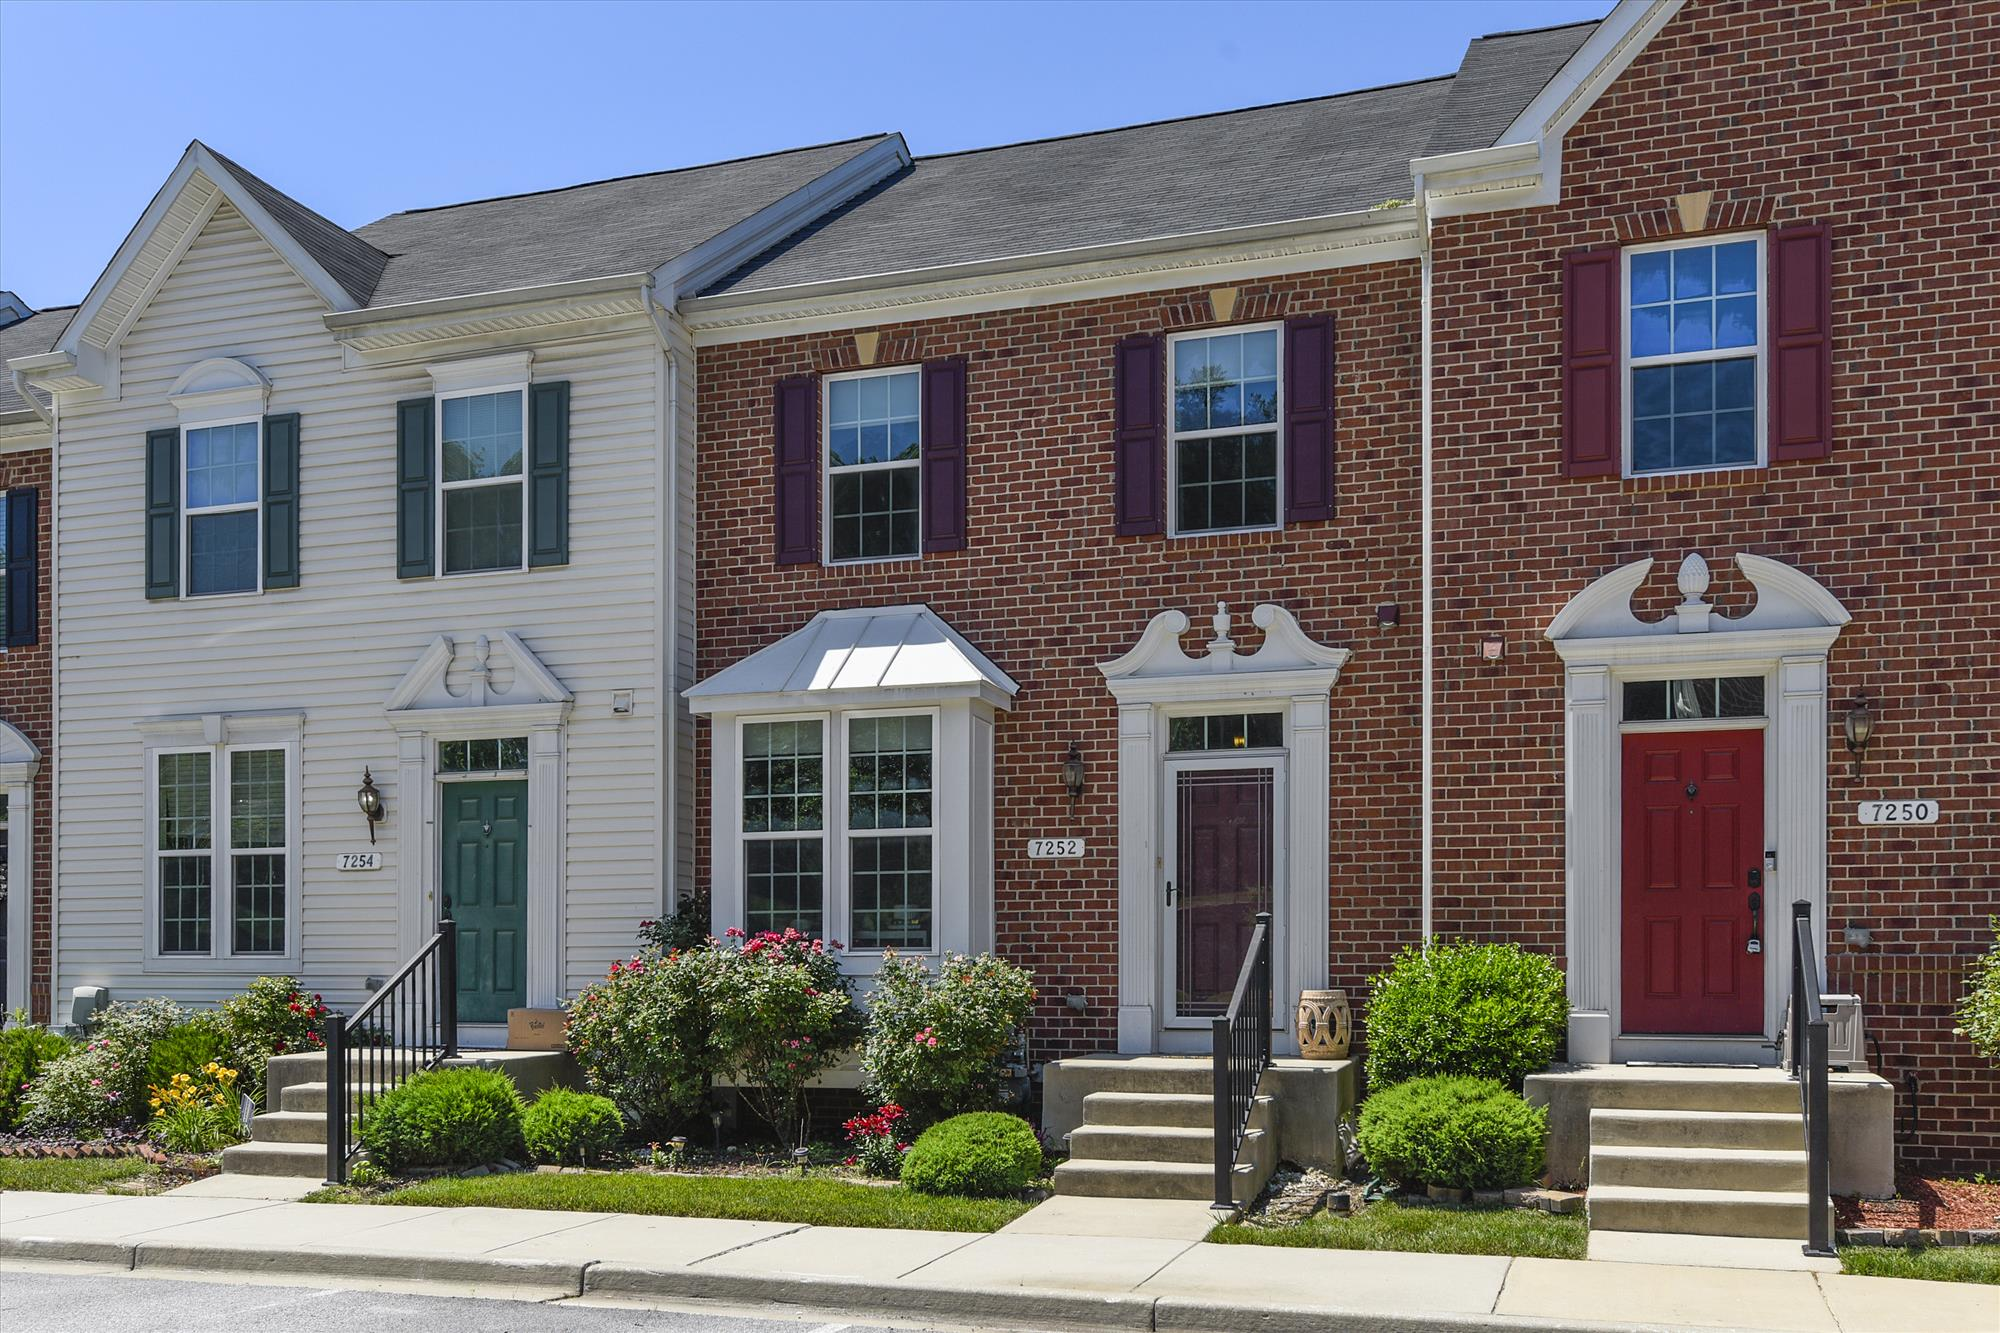 Home for sale near Fort Meade MD